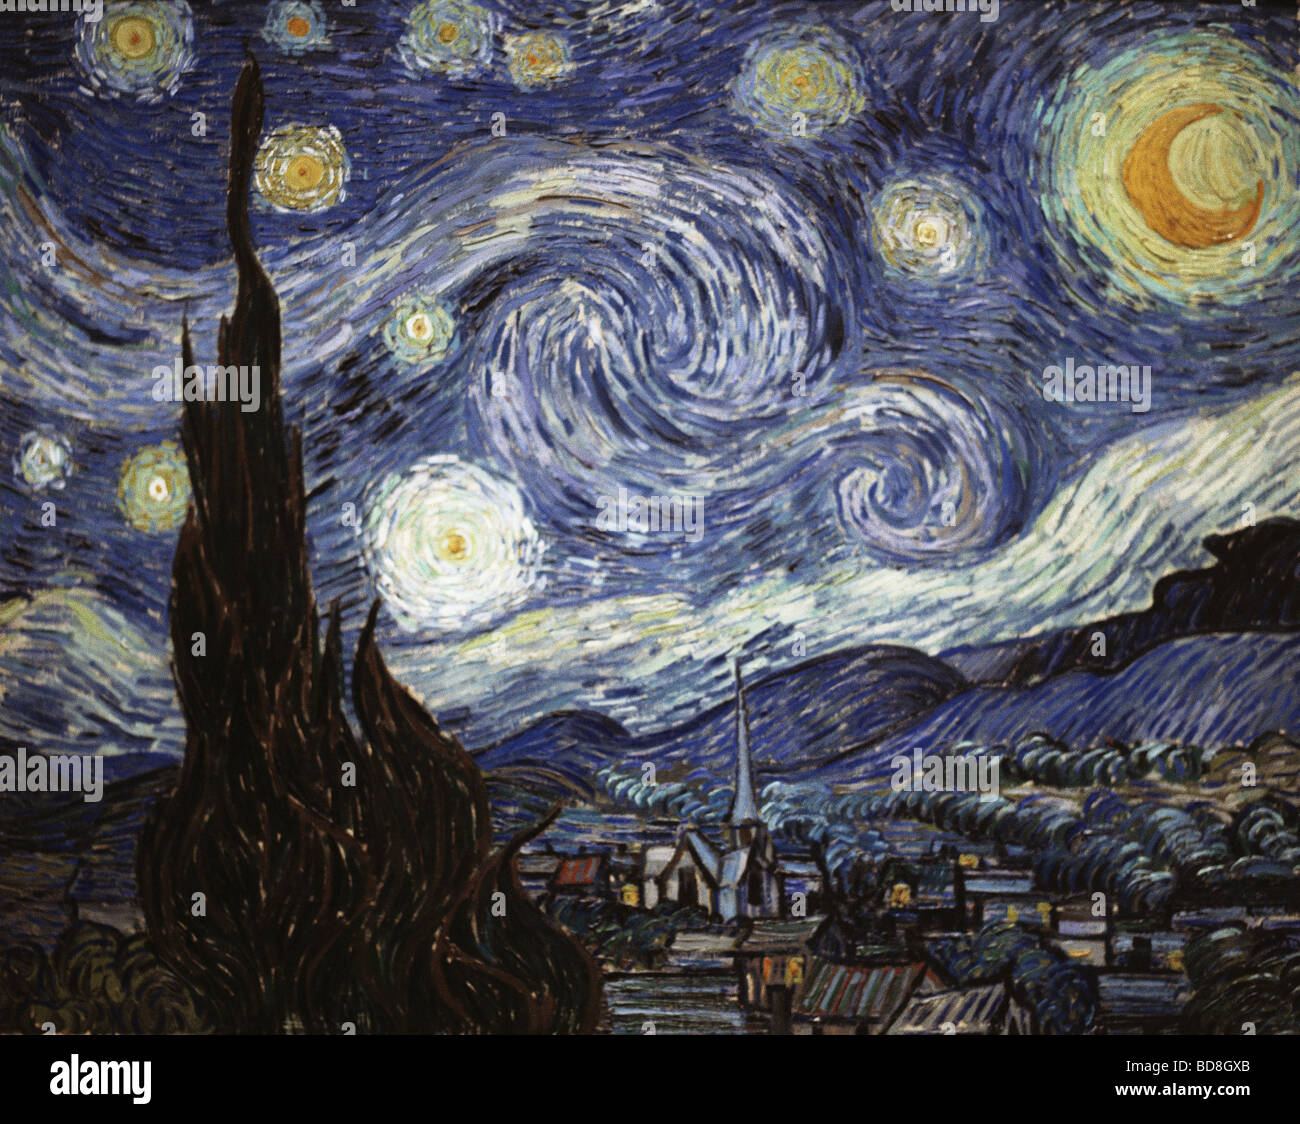 "fine arts, Gogh, Vincent van, (1853 - 1890), painting, ""The Starry Night"", oil on canvas, 73 x 92 cm, 1889, National Stock Foto"